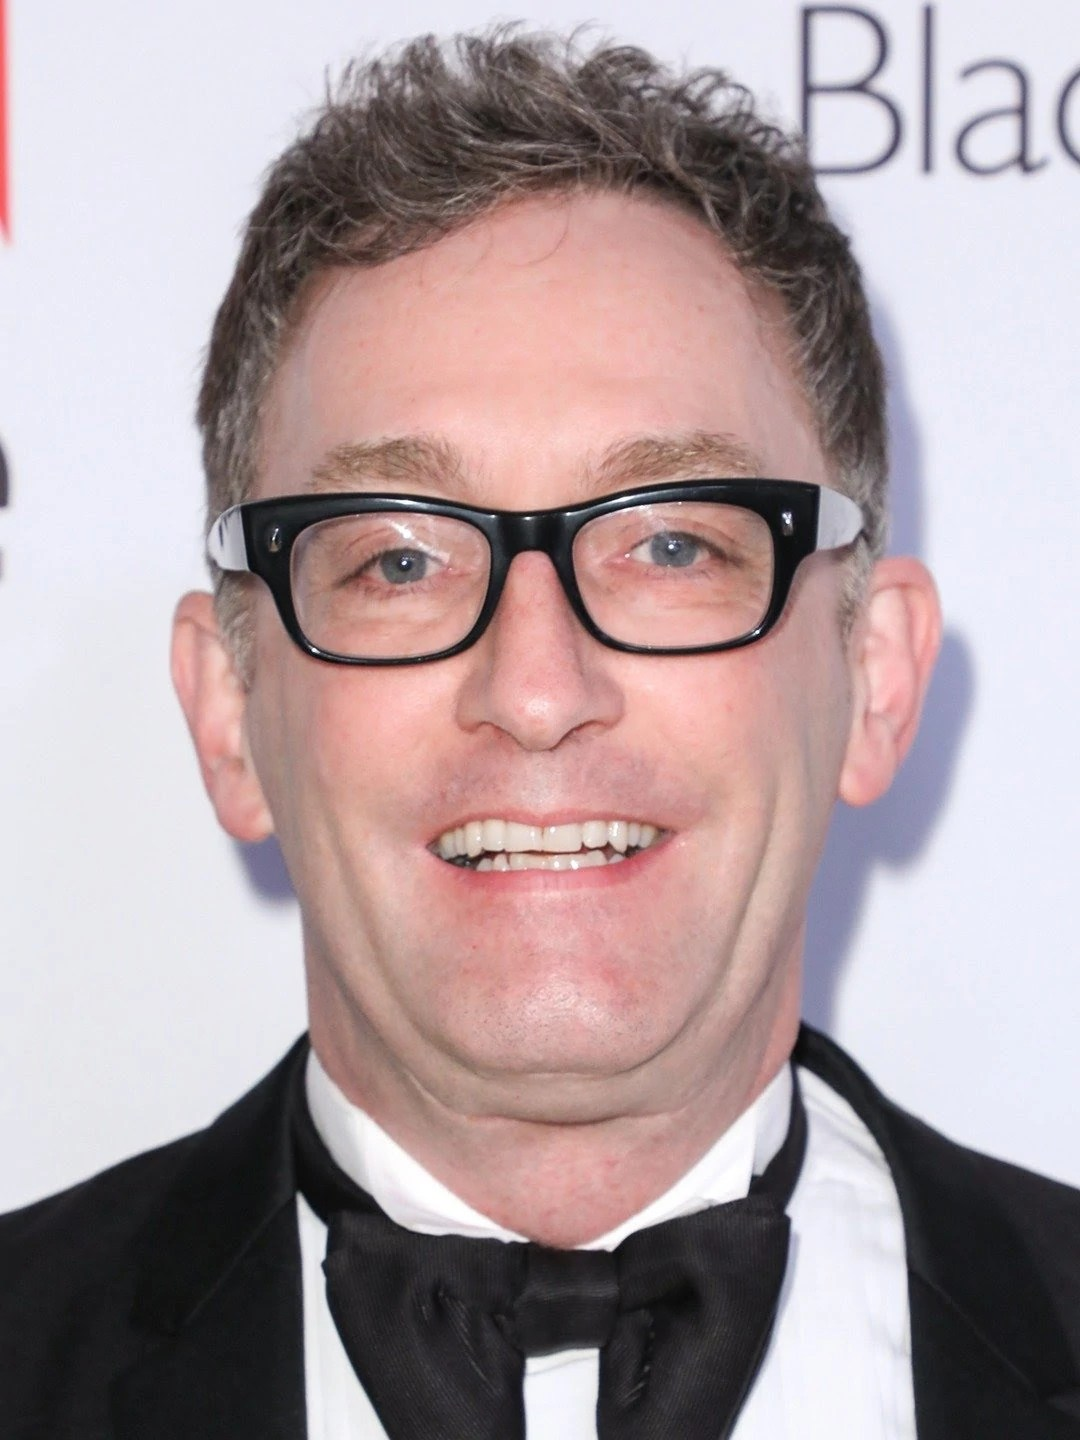 Tom Kenny Movies And Tv Shows : kenny, movies, shows, Kenny, Forces, Fandom